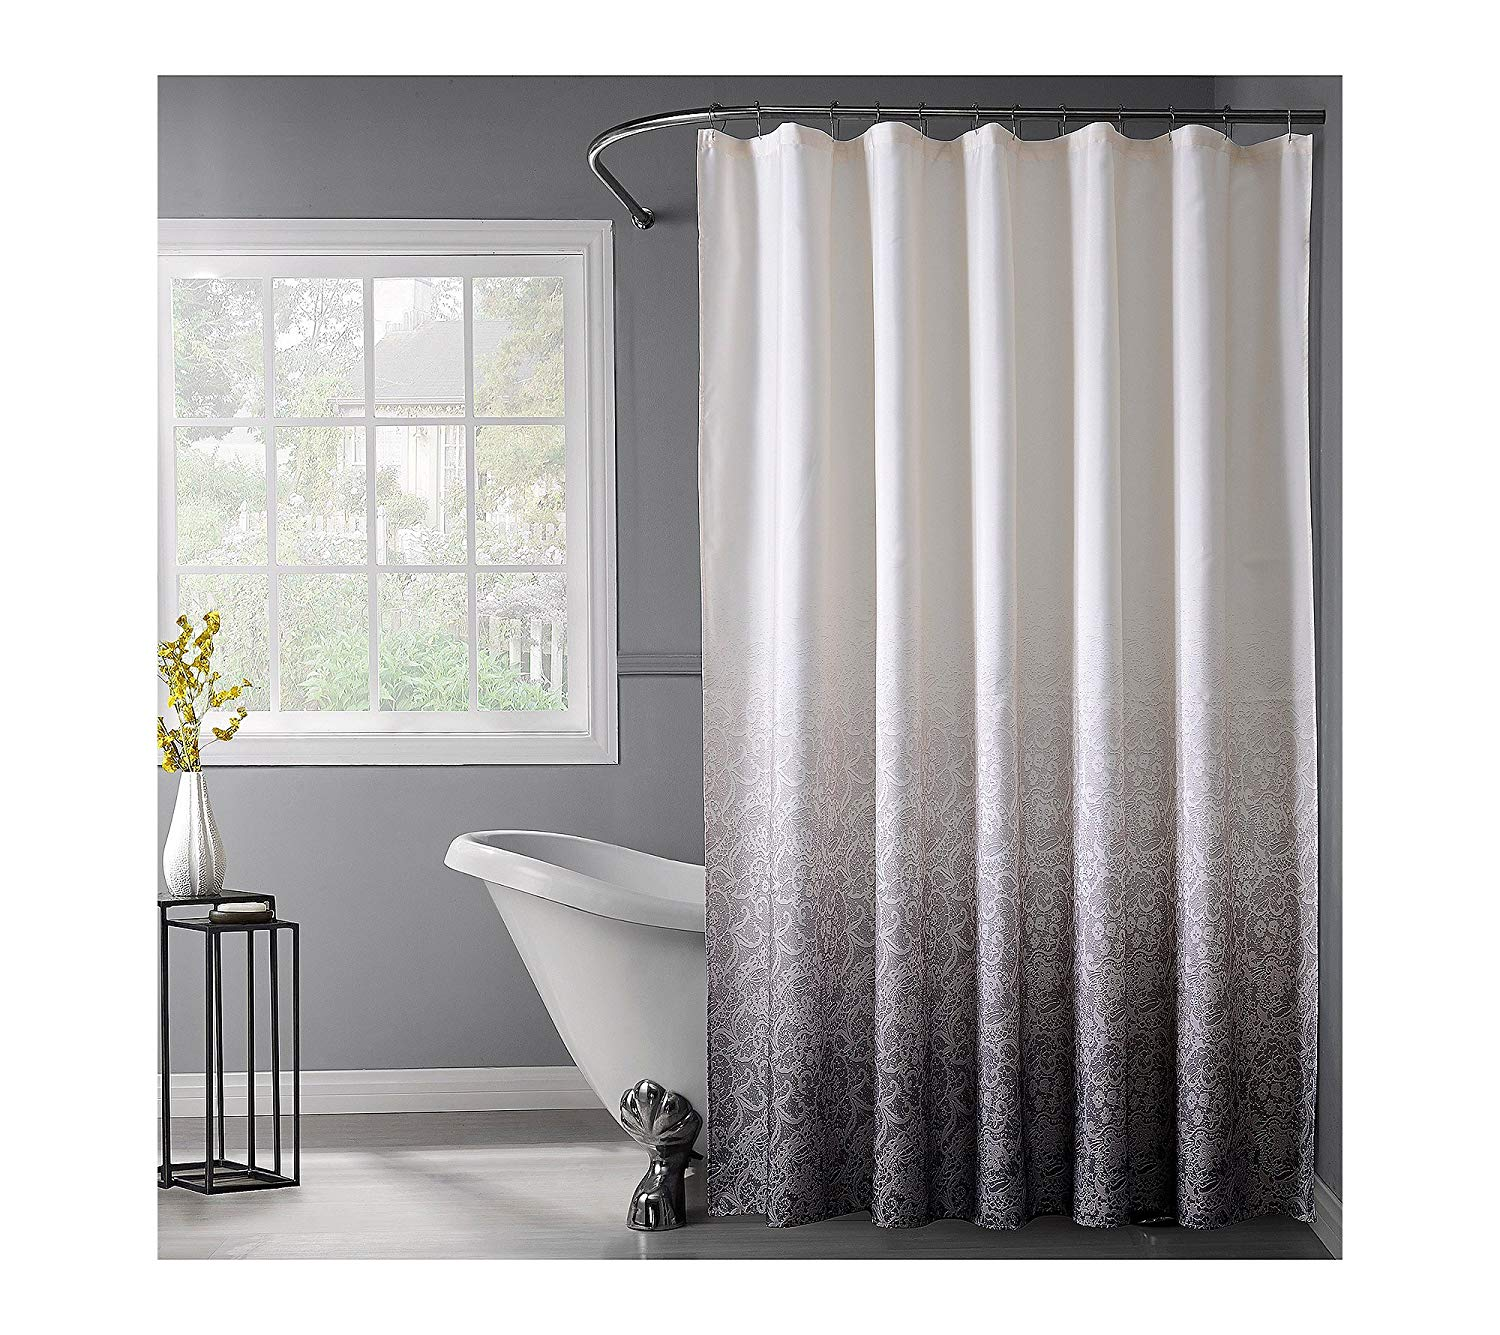 Get Quotations Dainty Home Lace Ombre Shower Curtain Black